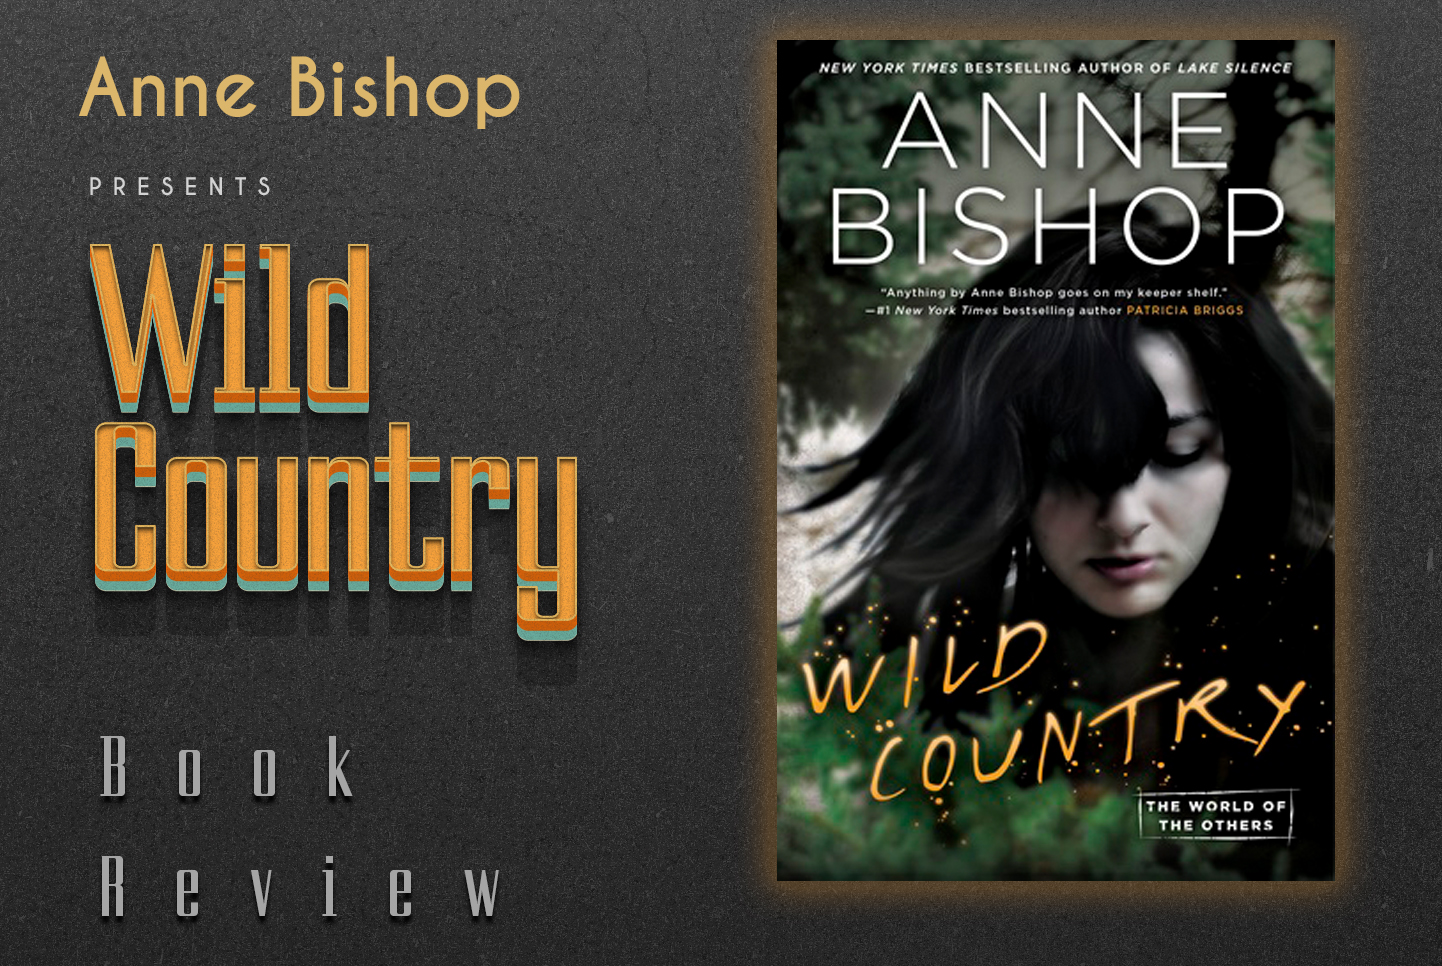 Review of Wild Country (The World of the Others #2) by Anne Bishop